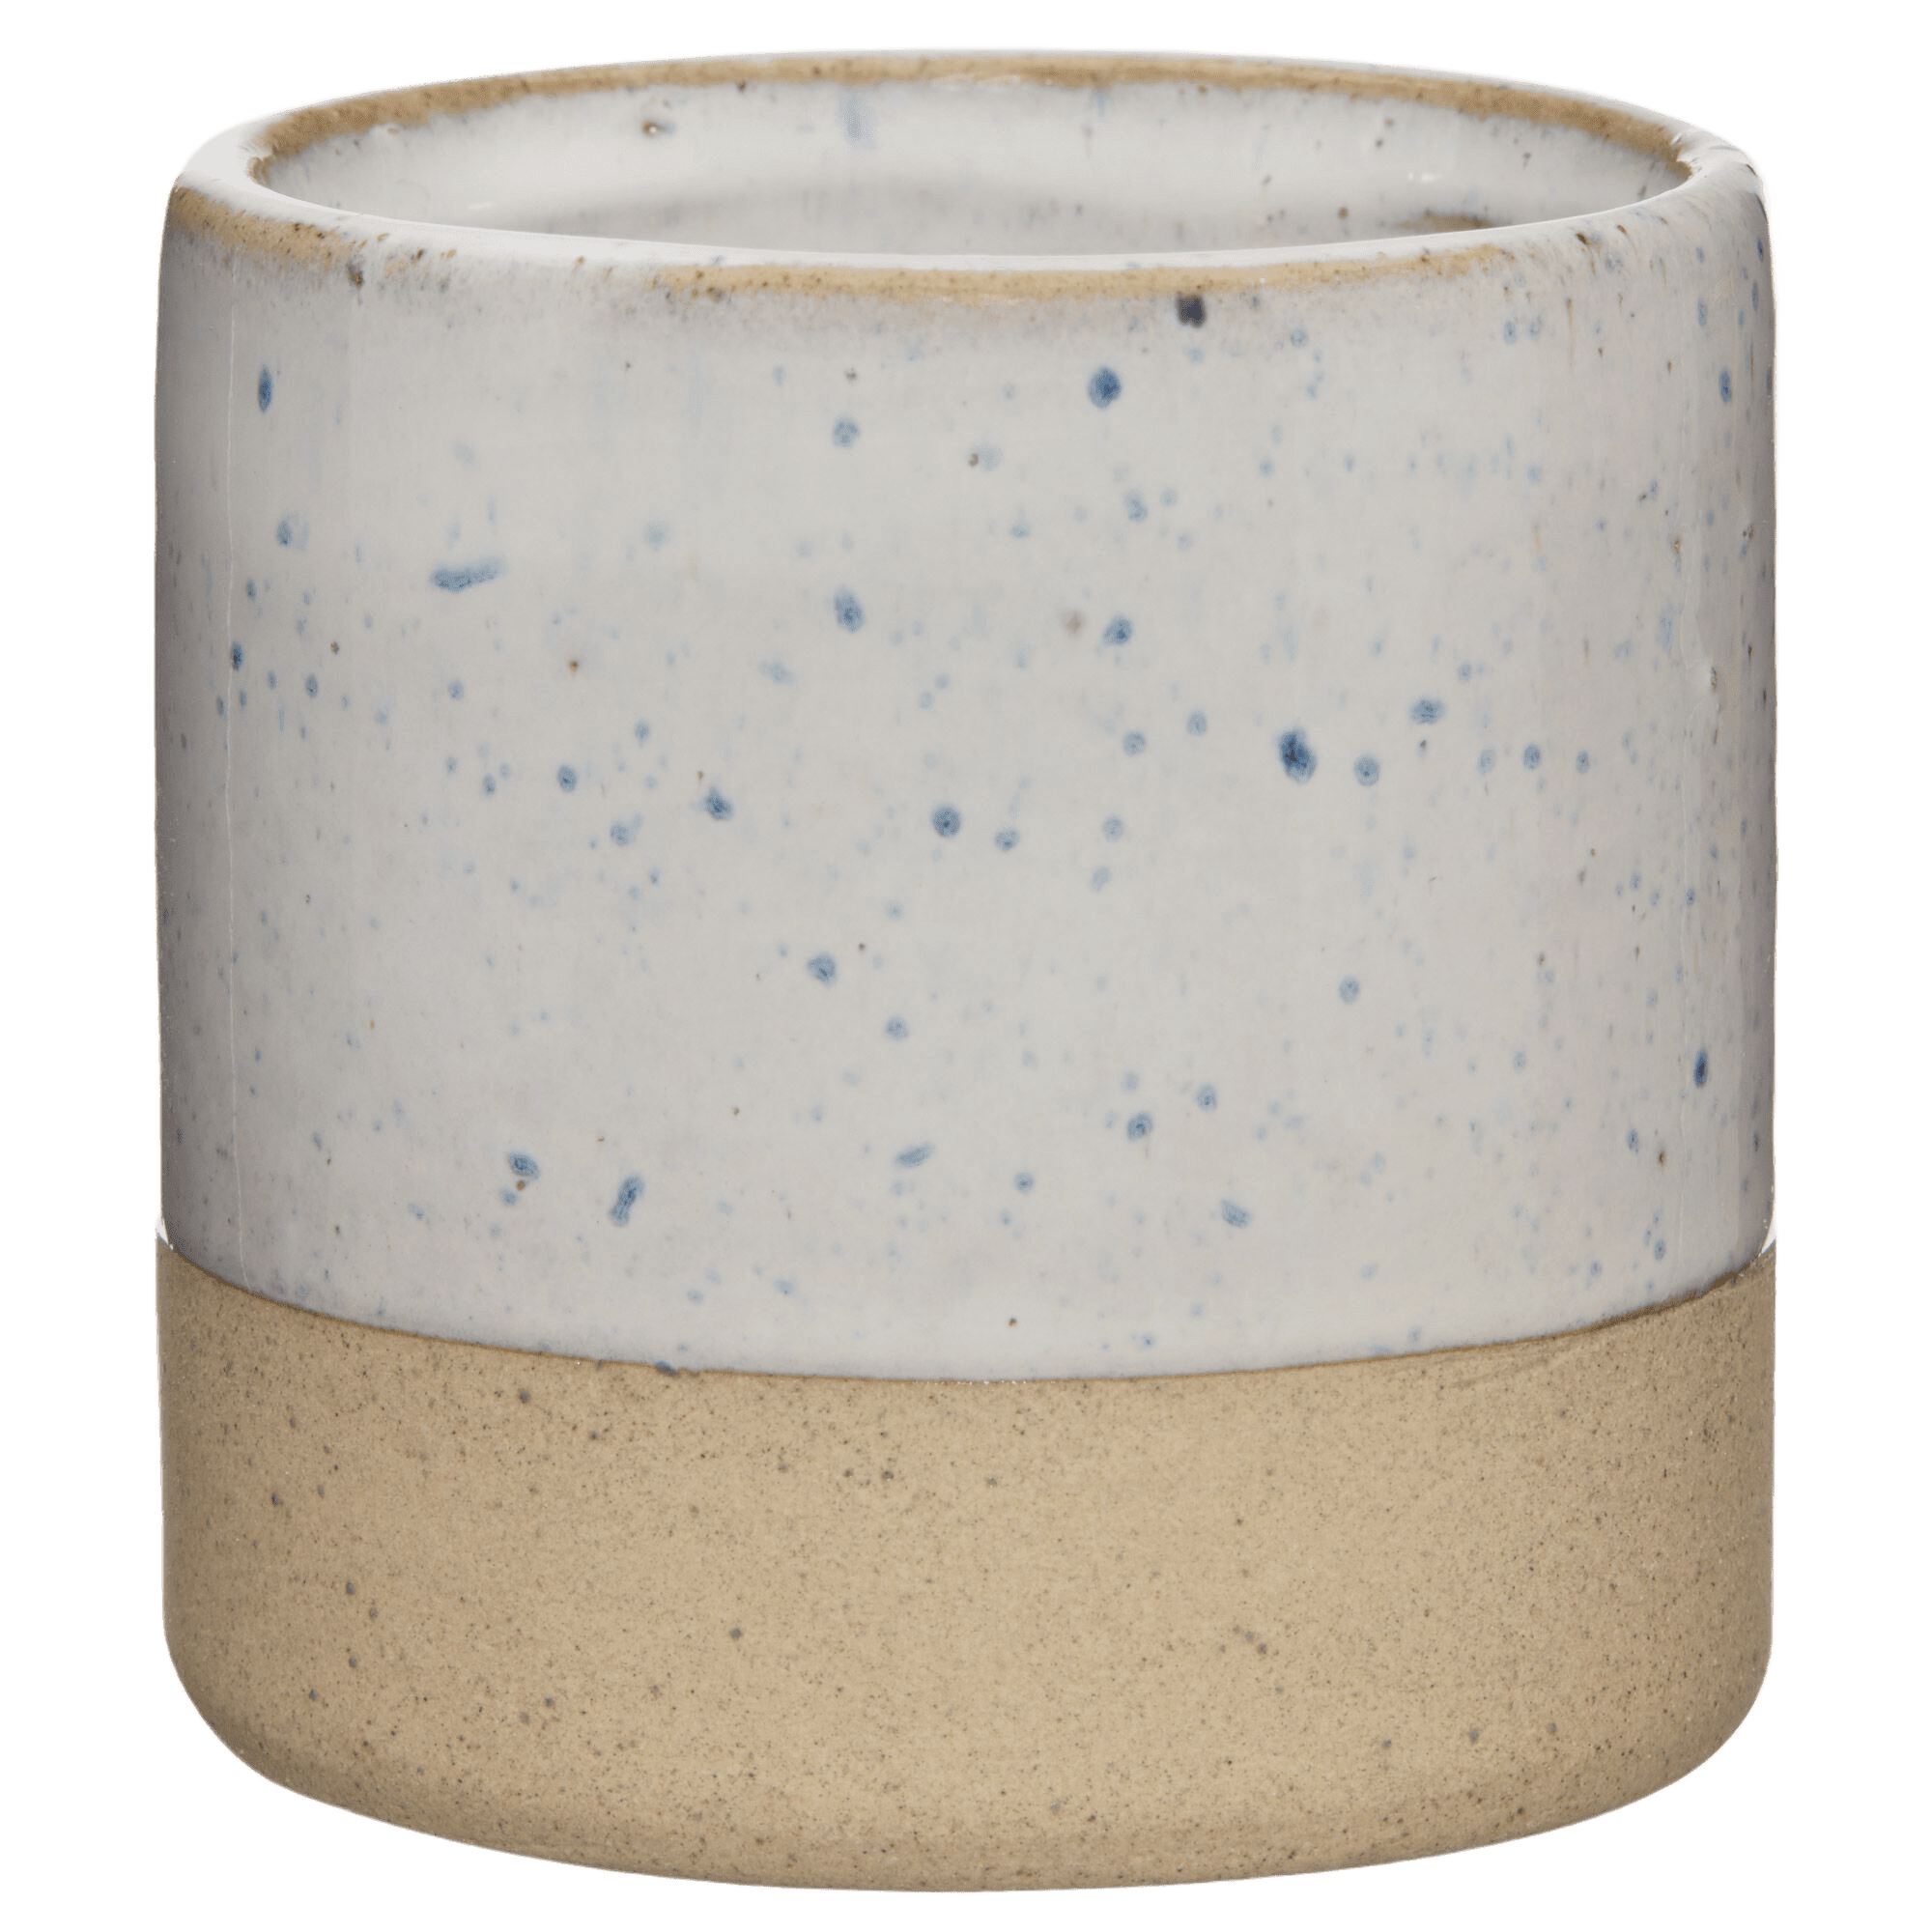 Two-Tone Speckled Ceramic Candle